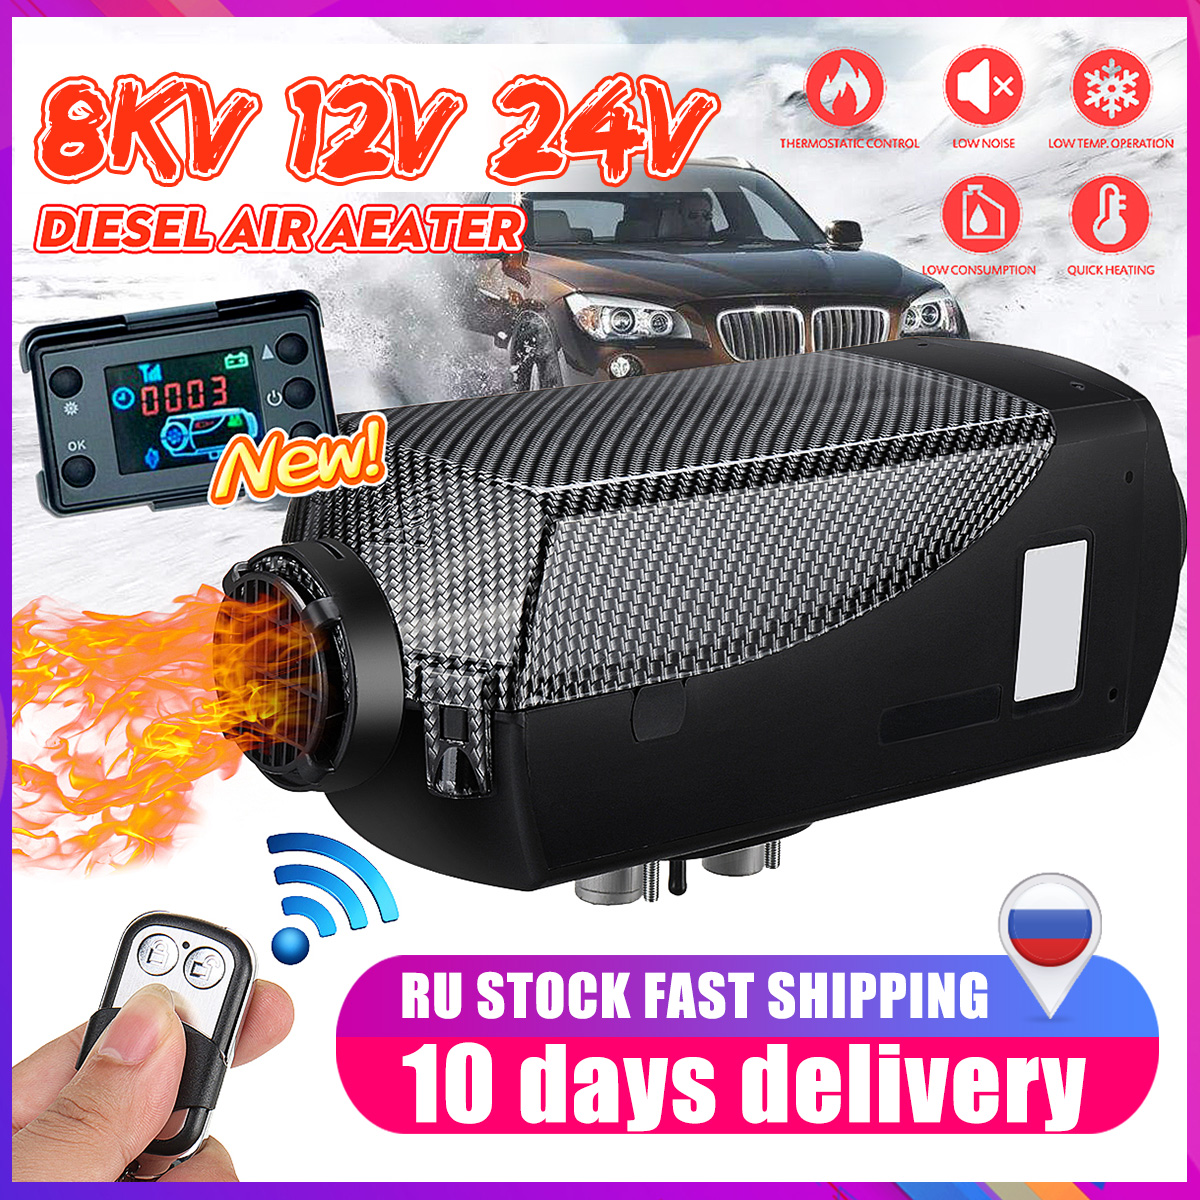 Car Heater 8KW 12V 24V Air Diesel Heater 2 Air Outlet LCD Monitor + <font><b>15L</b></font> <font><b>Tank</b></font> Remote Control for RV Boats Trailer Truck Motorhome image